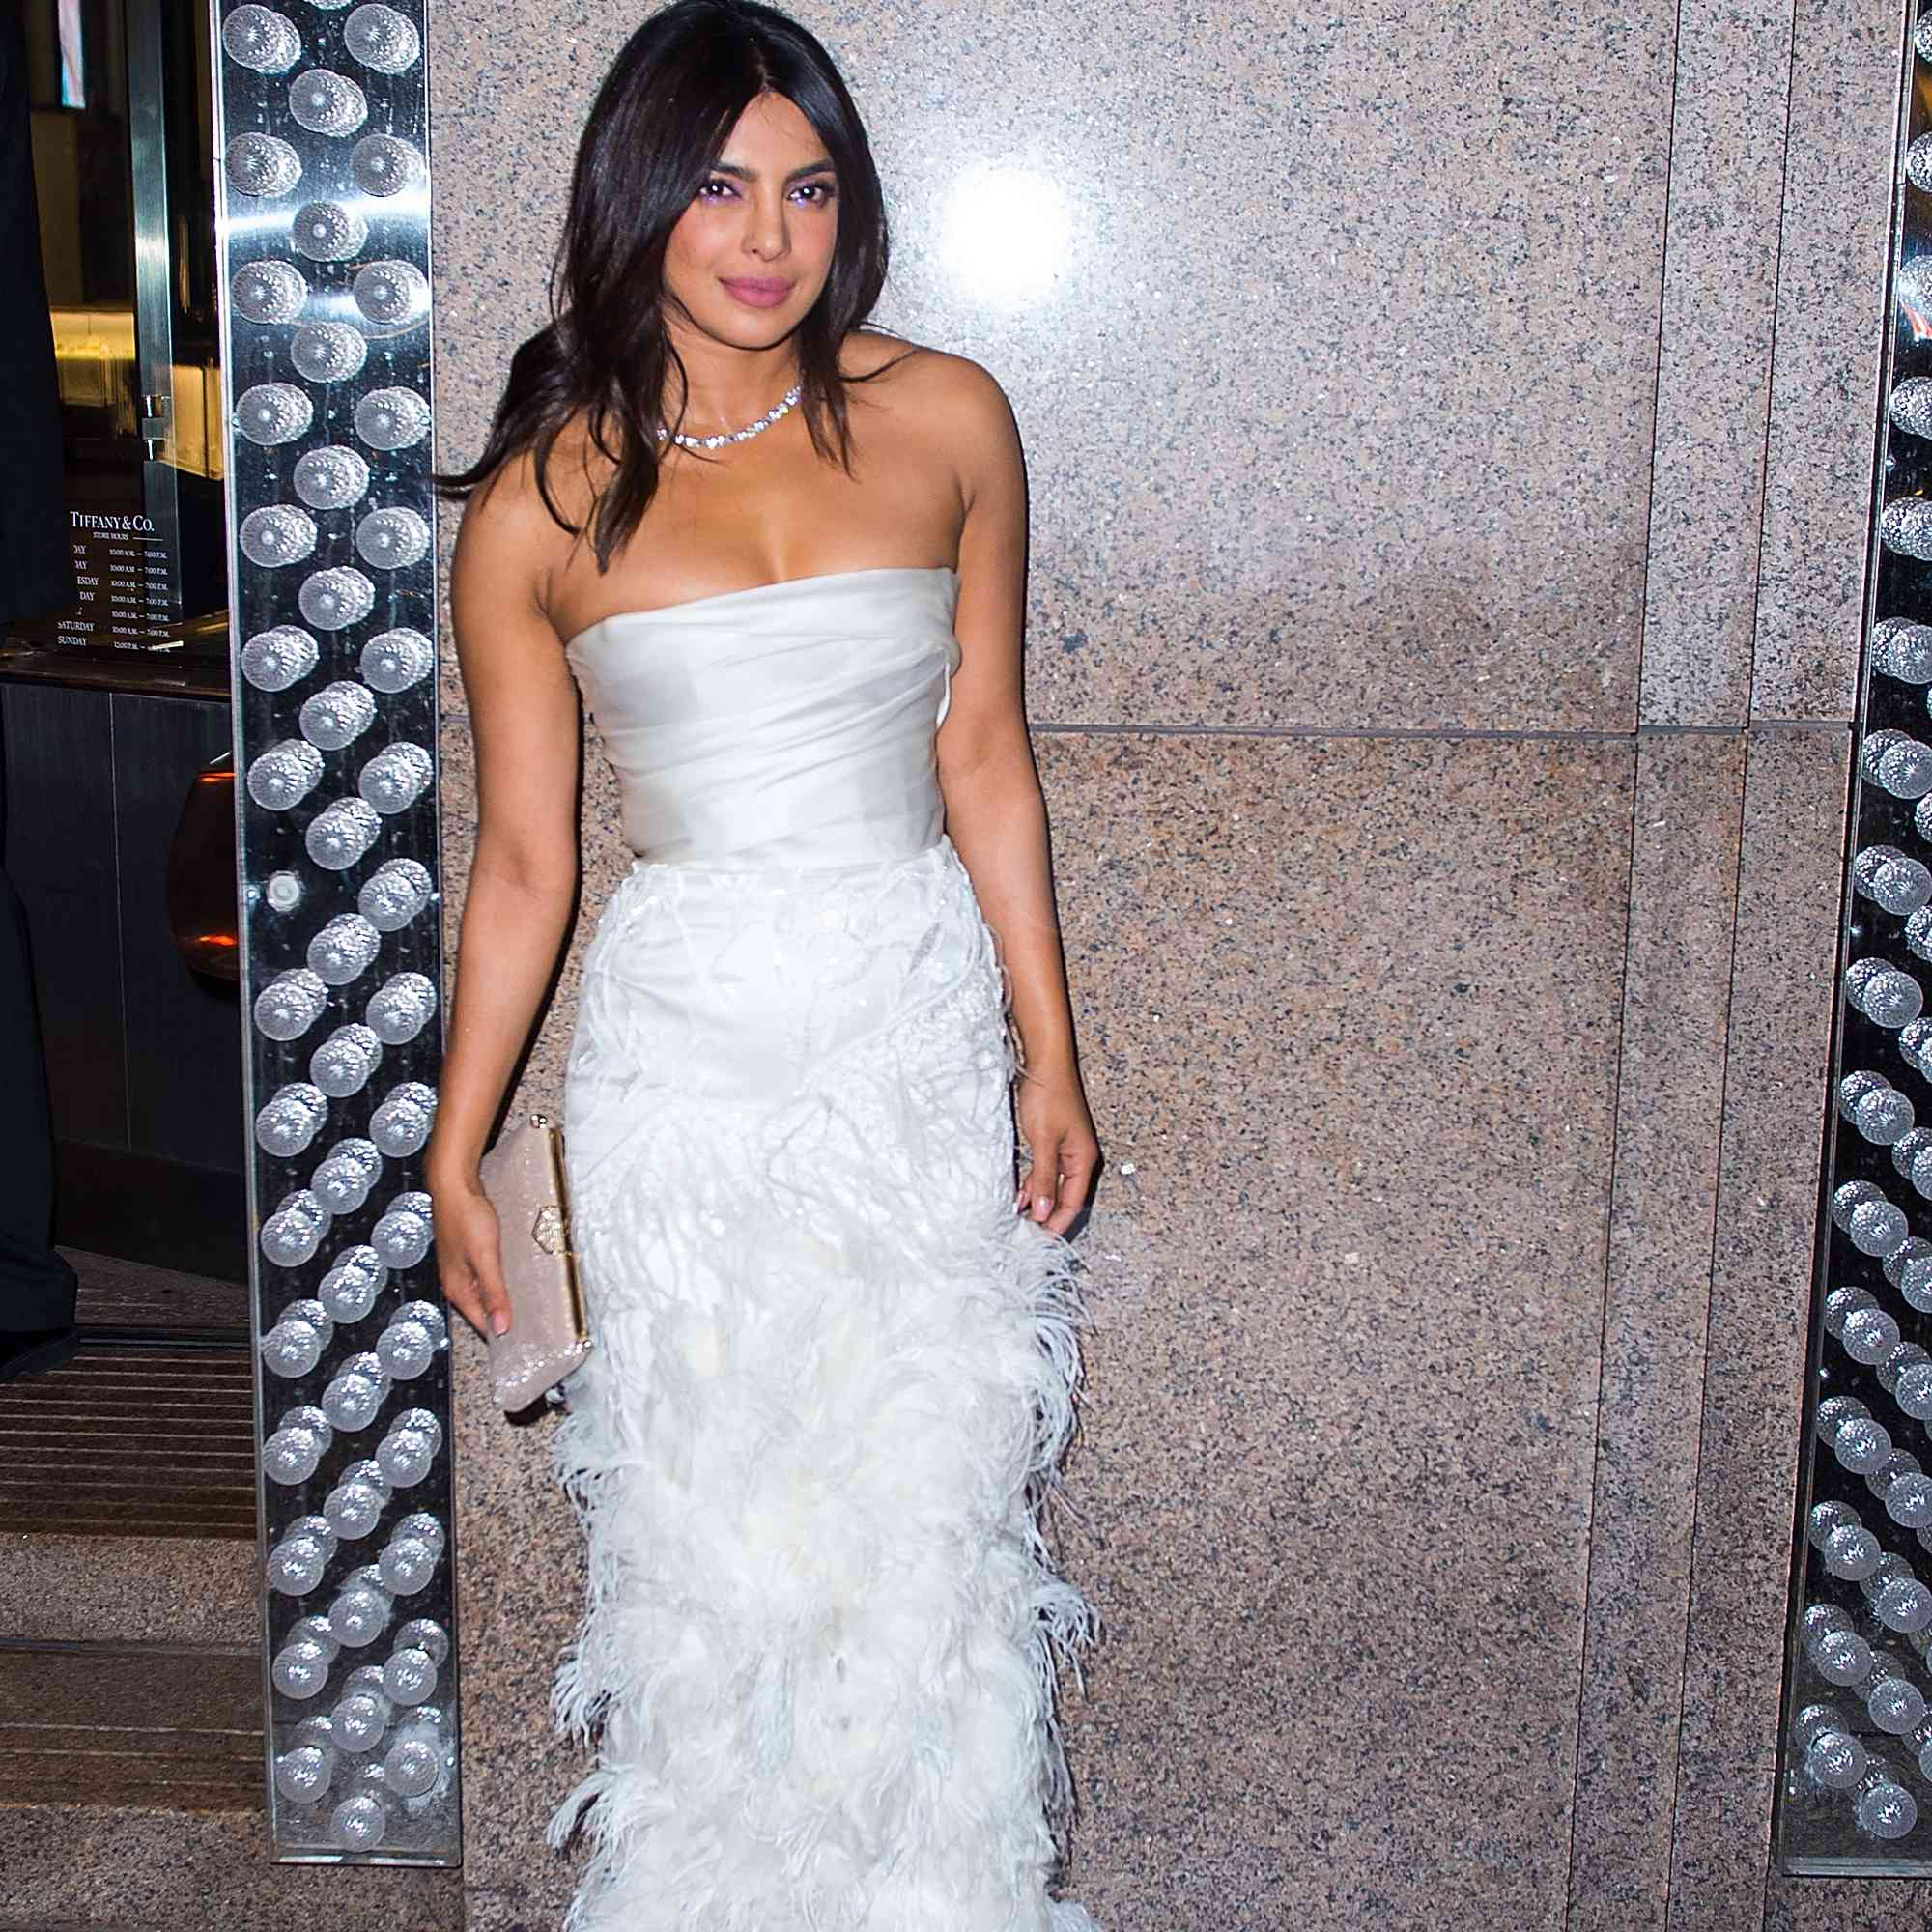 A Whirlwind Love Everything You Need To Know About Priyanka